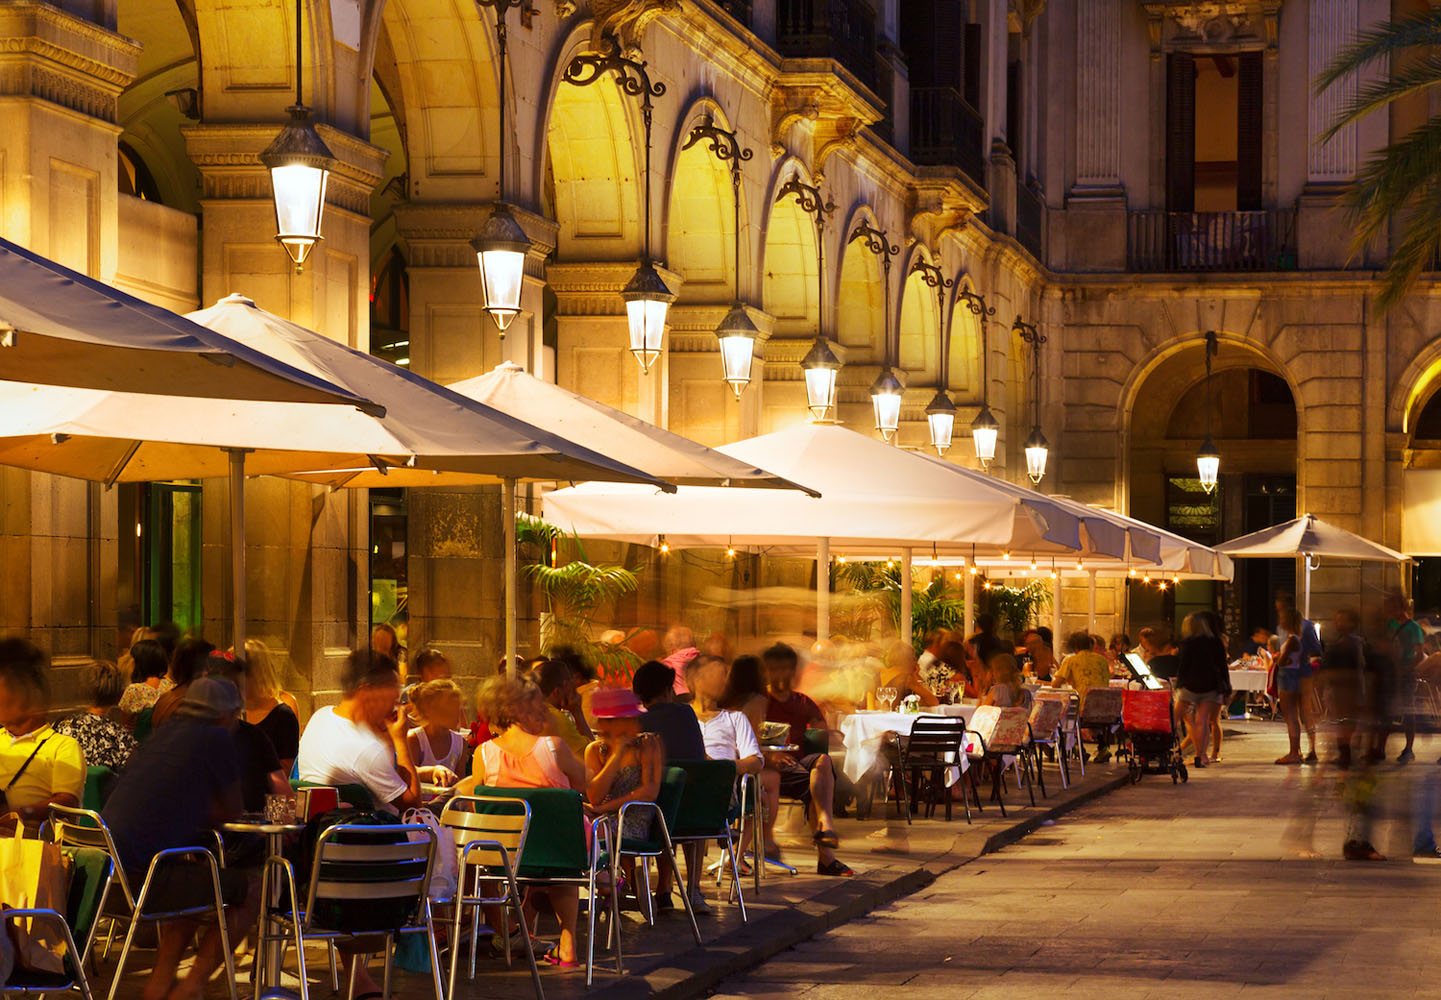 Nightlife is an important part of Spanish culture.